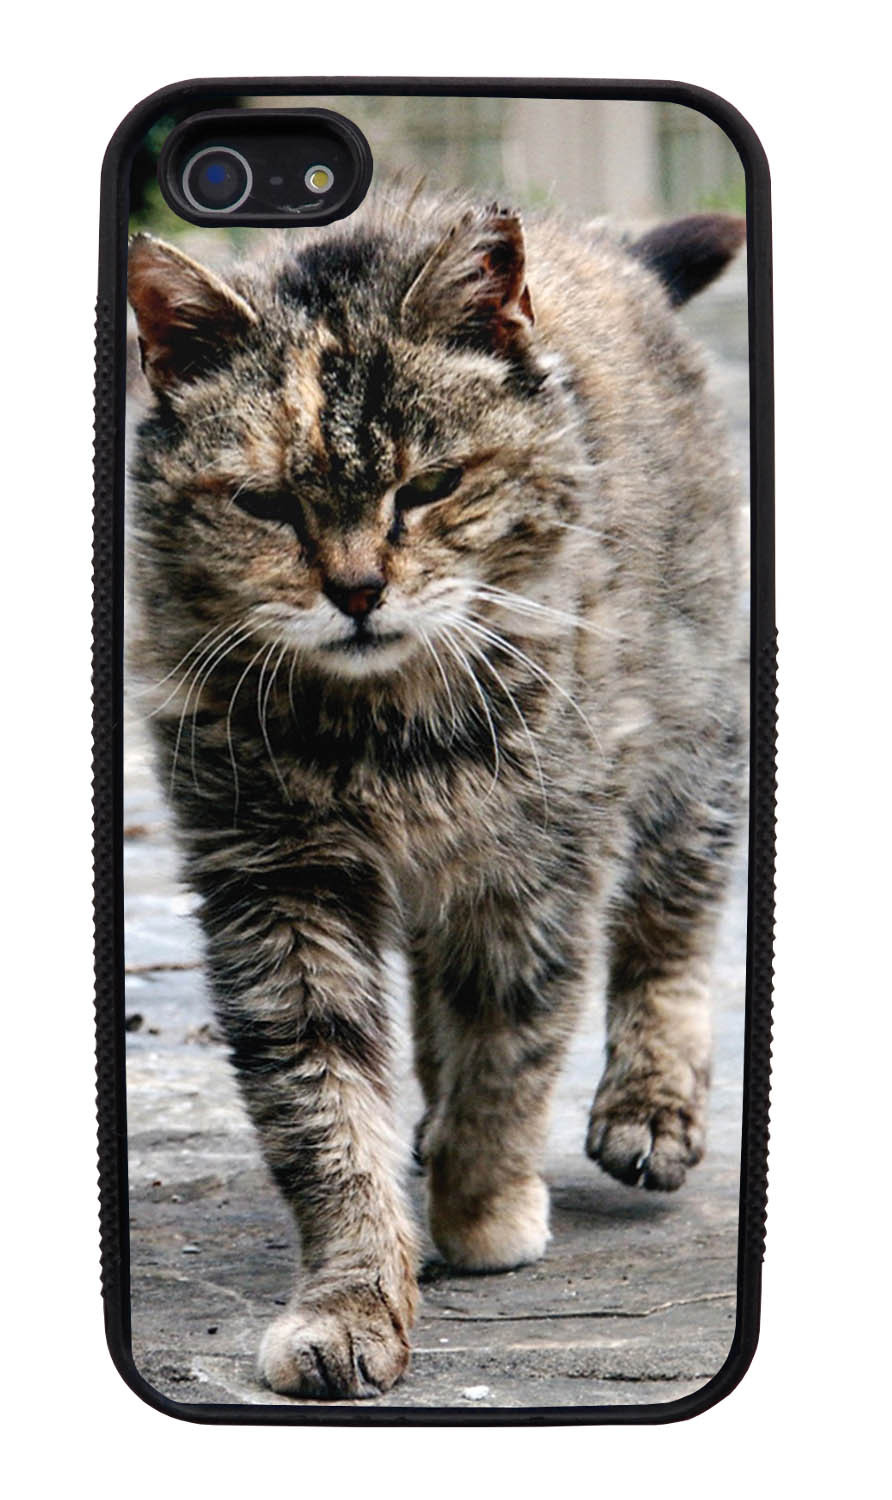 Apple iPhone 5 / 5S Cat Case - Strutting Cat Photo - Cute Pictures - Black Slim Rubber Case